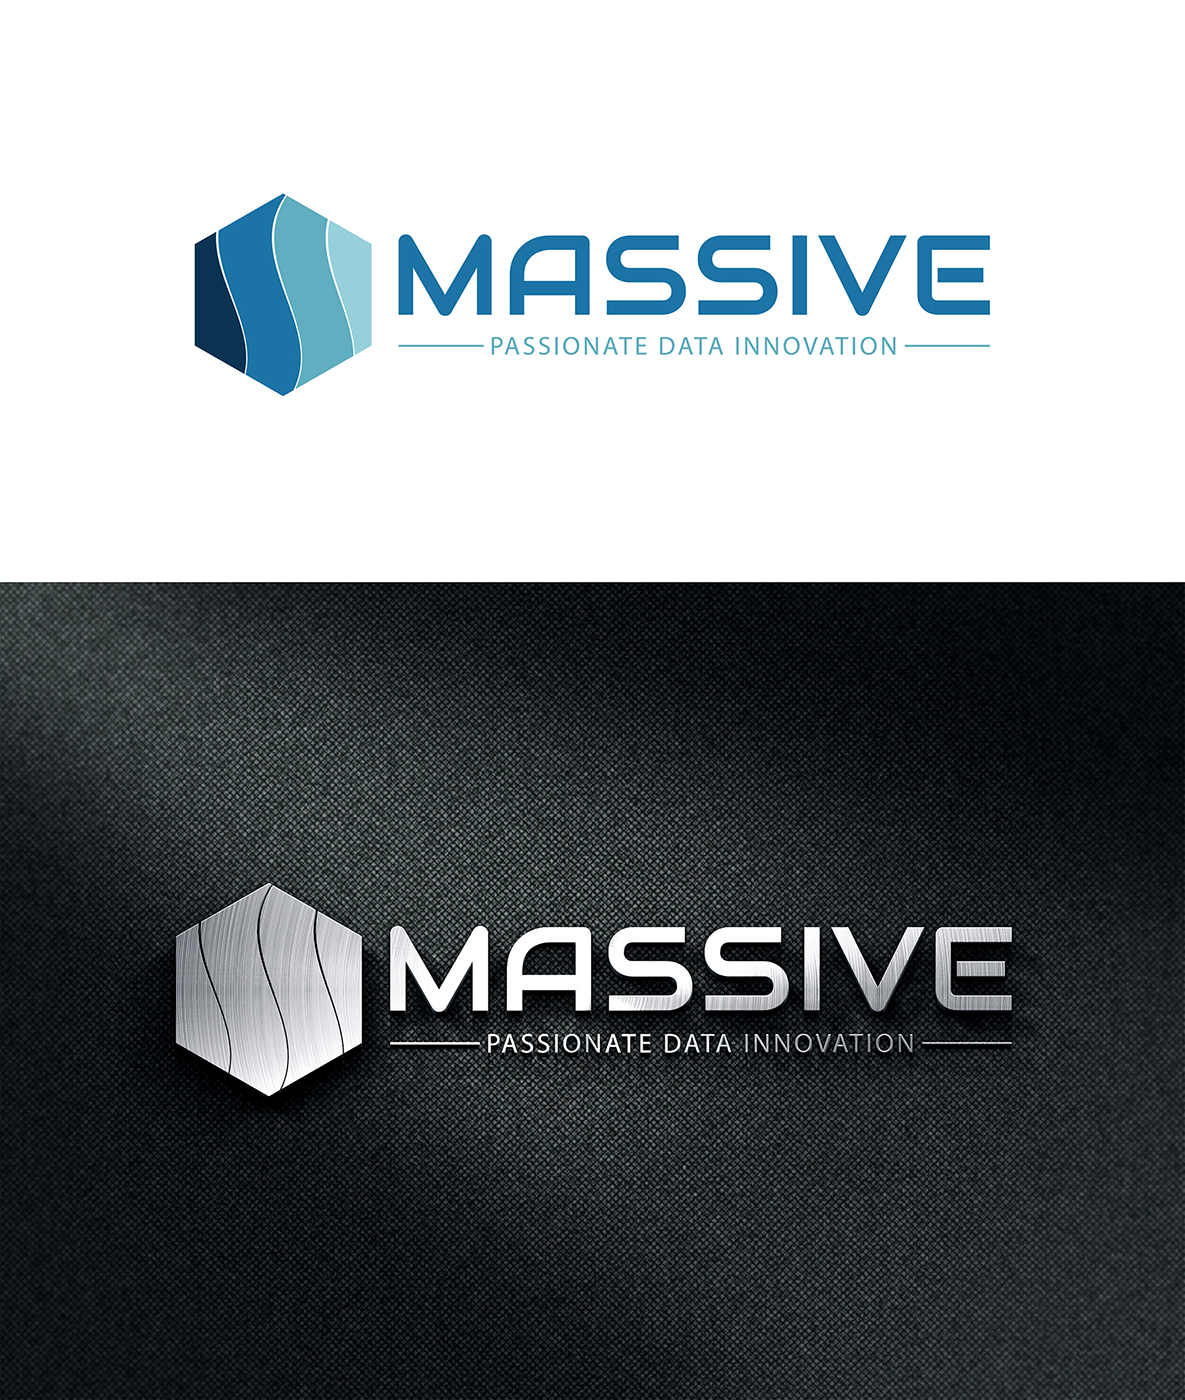 Logo Design by Sami Baig - Entry No. 440 in the Logo Design Contest MASSIVE LOGO.